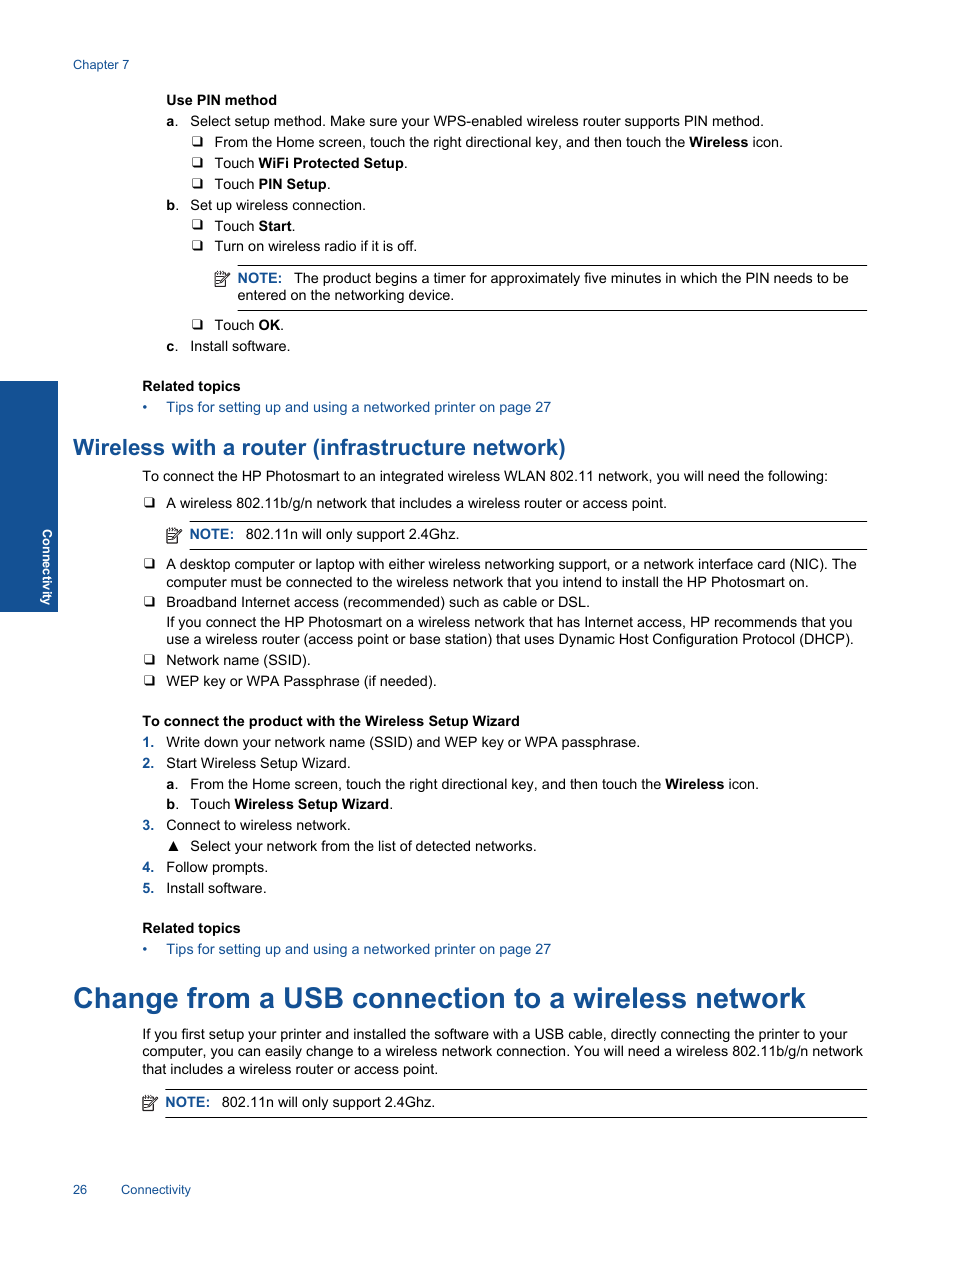 Wireless with a router (infrastructure network), Change from